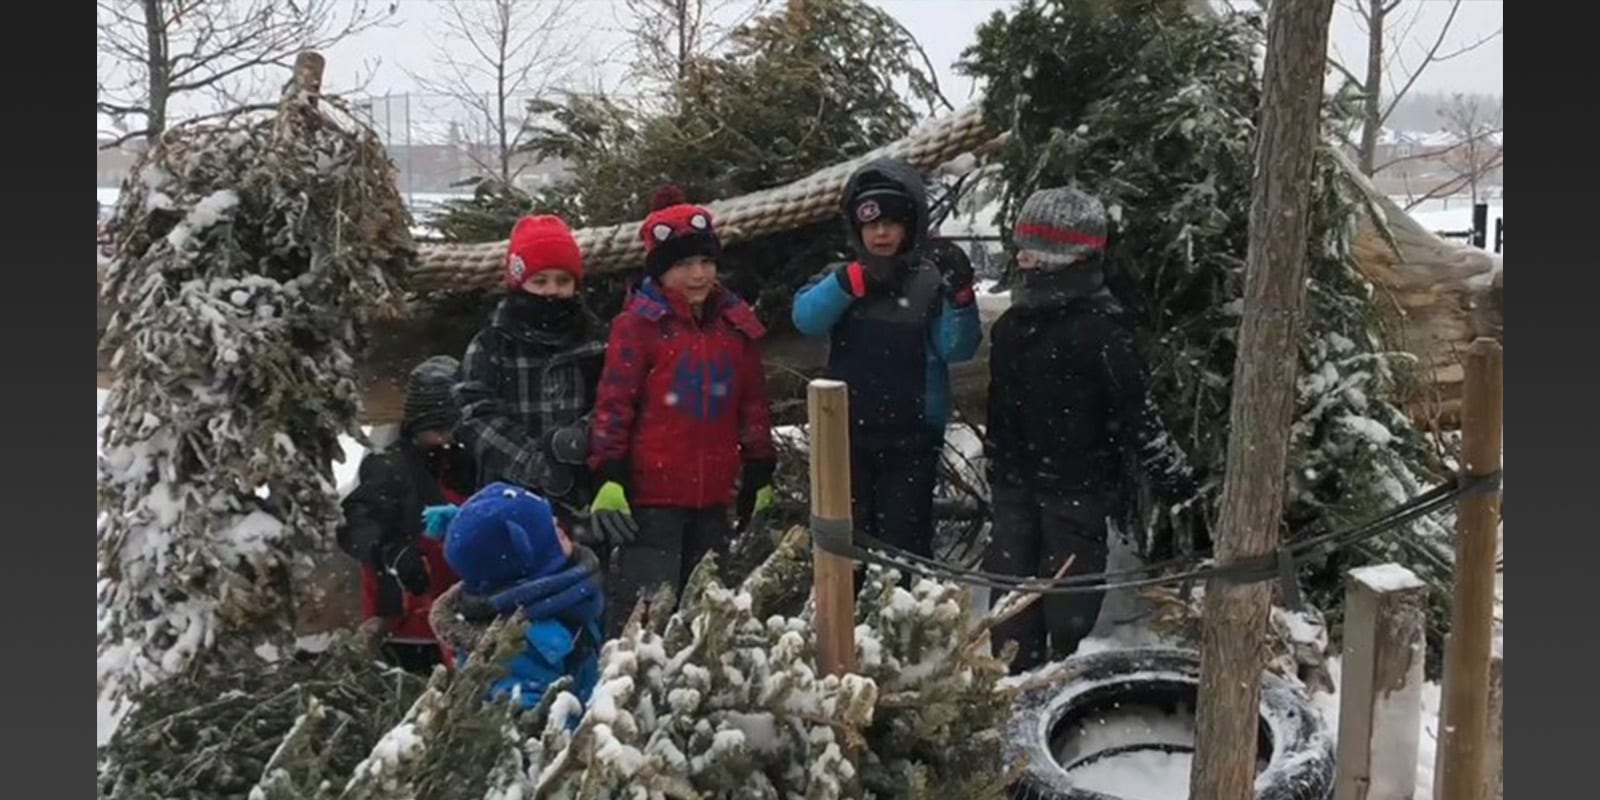 Photo of kindergarten students playing outside with Christmas trees.